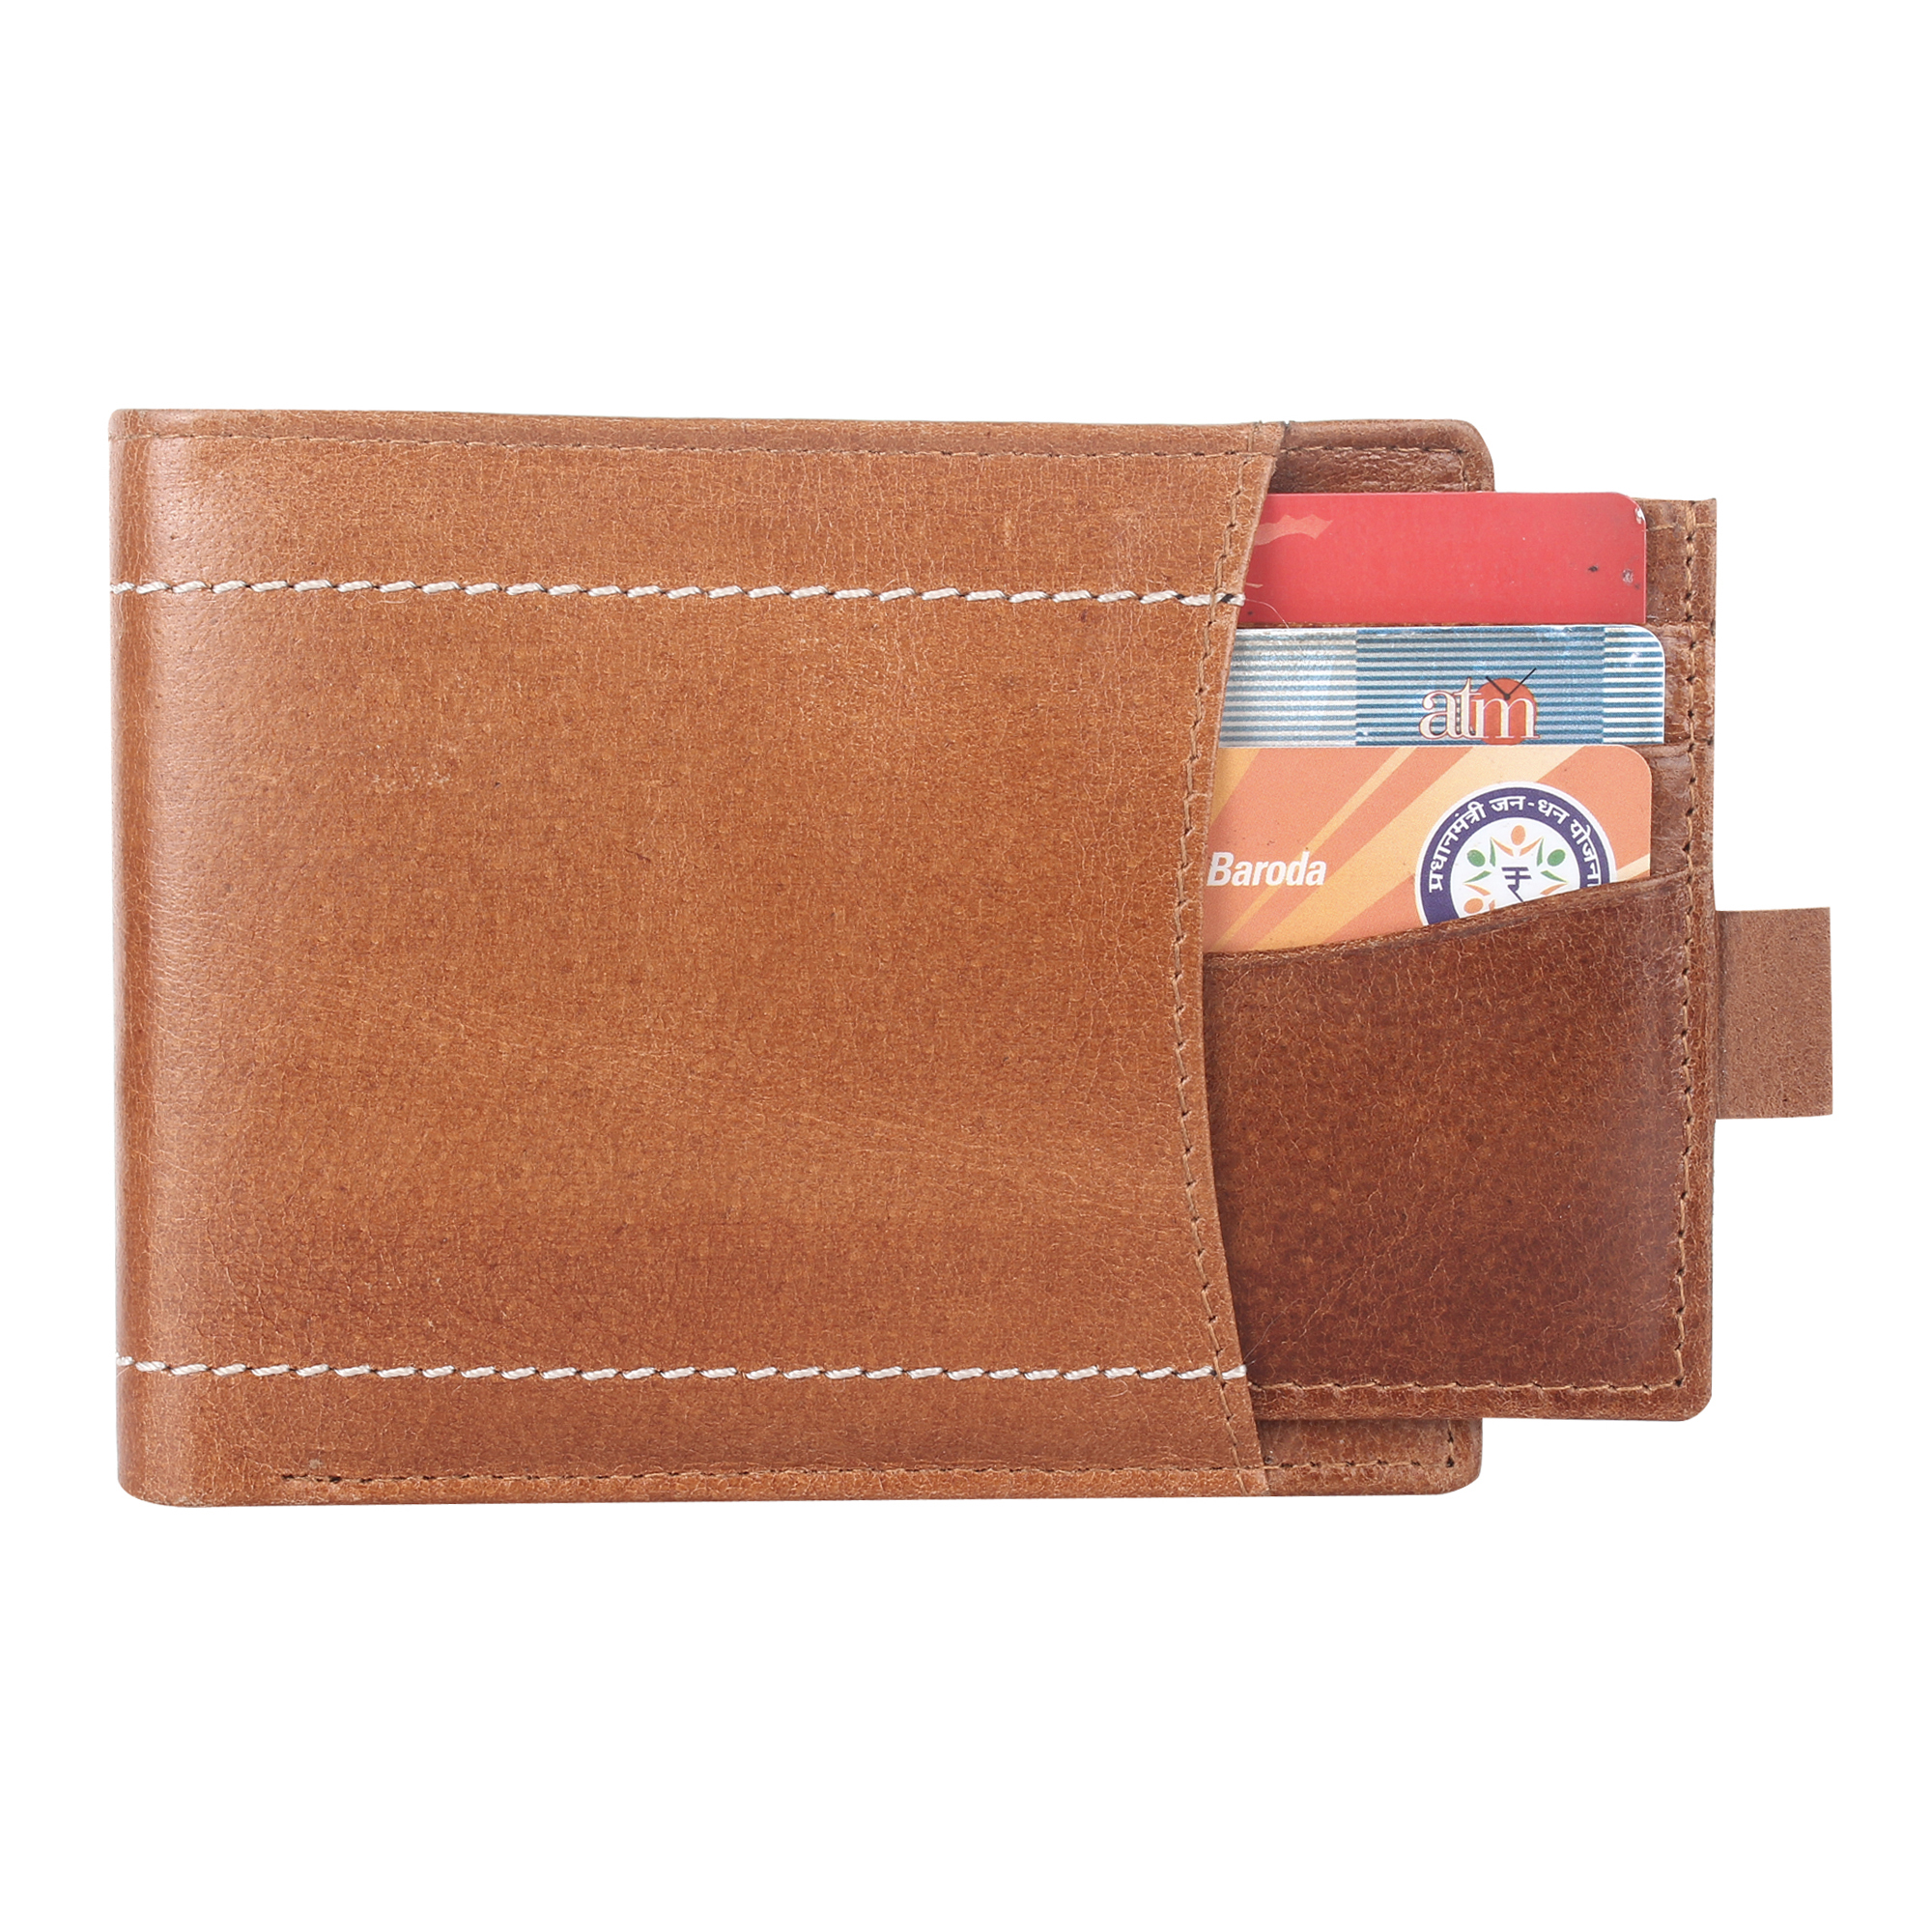 Leather Wallets Manufacturers in Poland, Leather Wallets Suppliers in Poland, Leather Wallets Wholesalers in Poland, Leather Wallets Traders in Poland